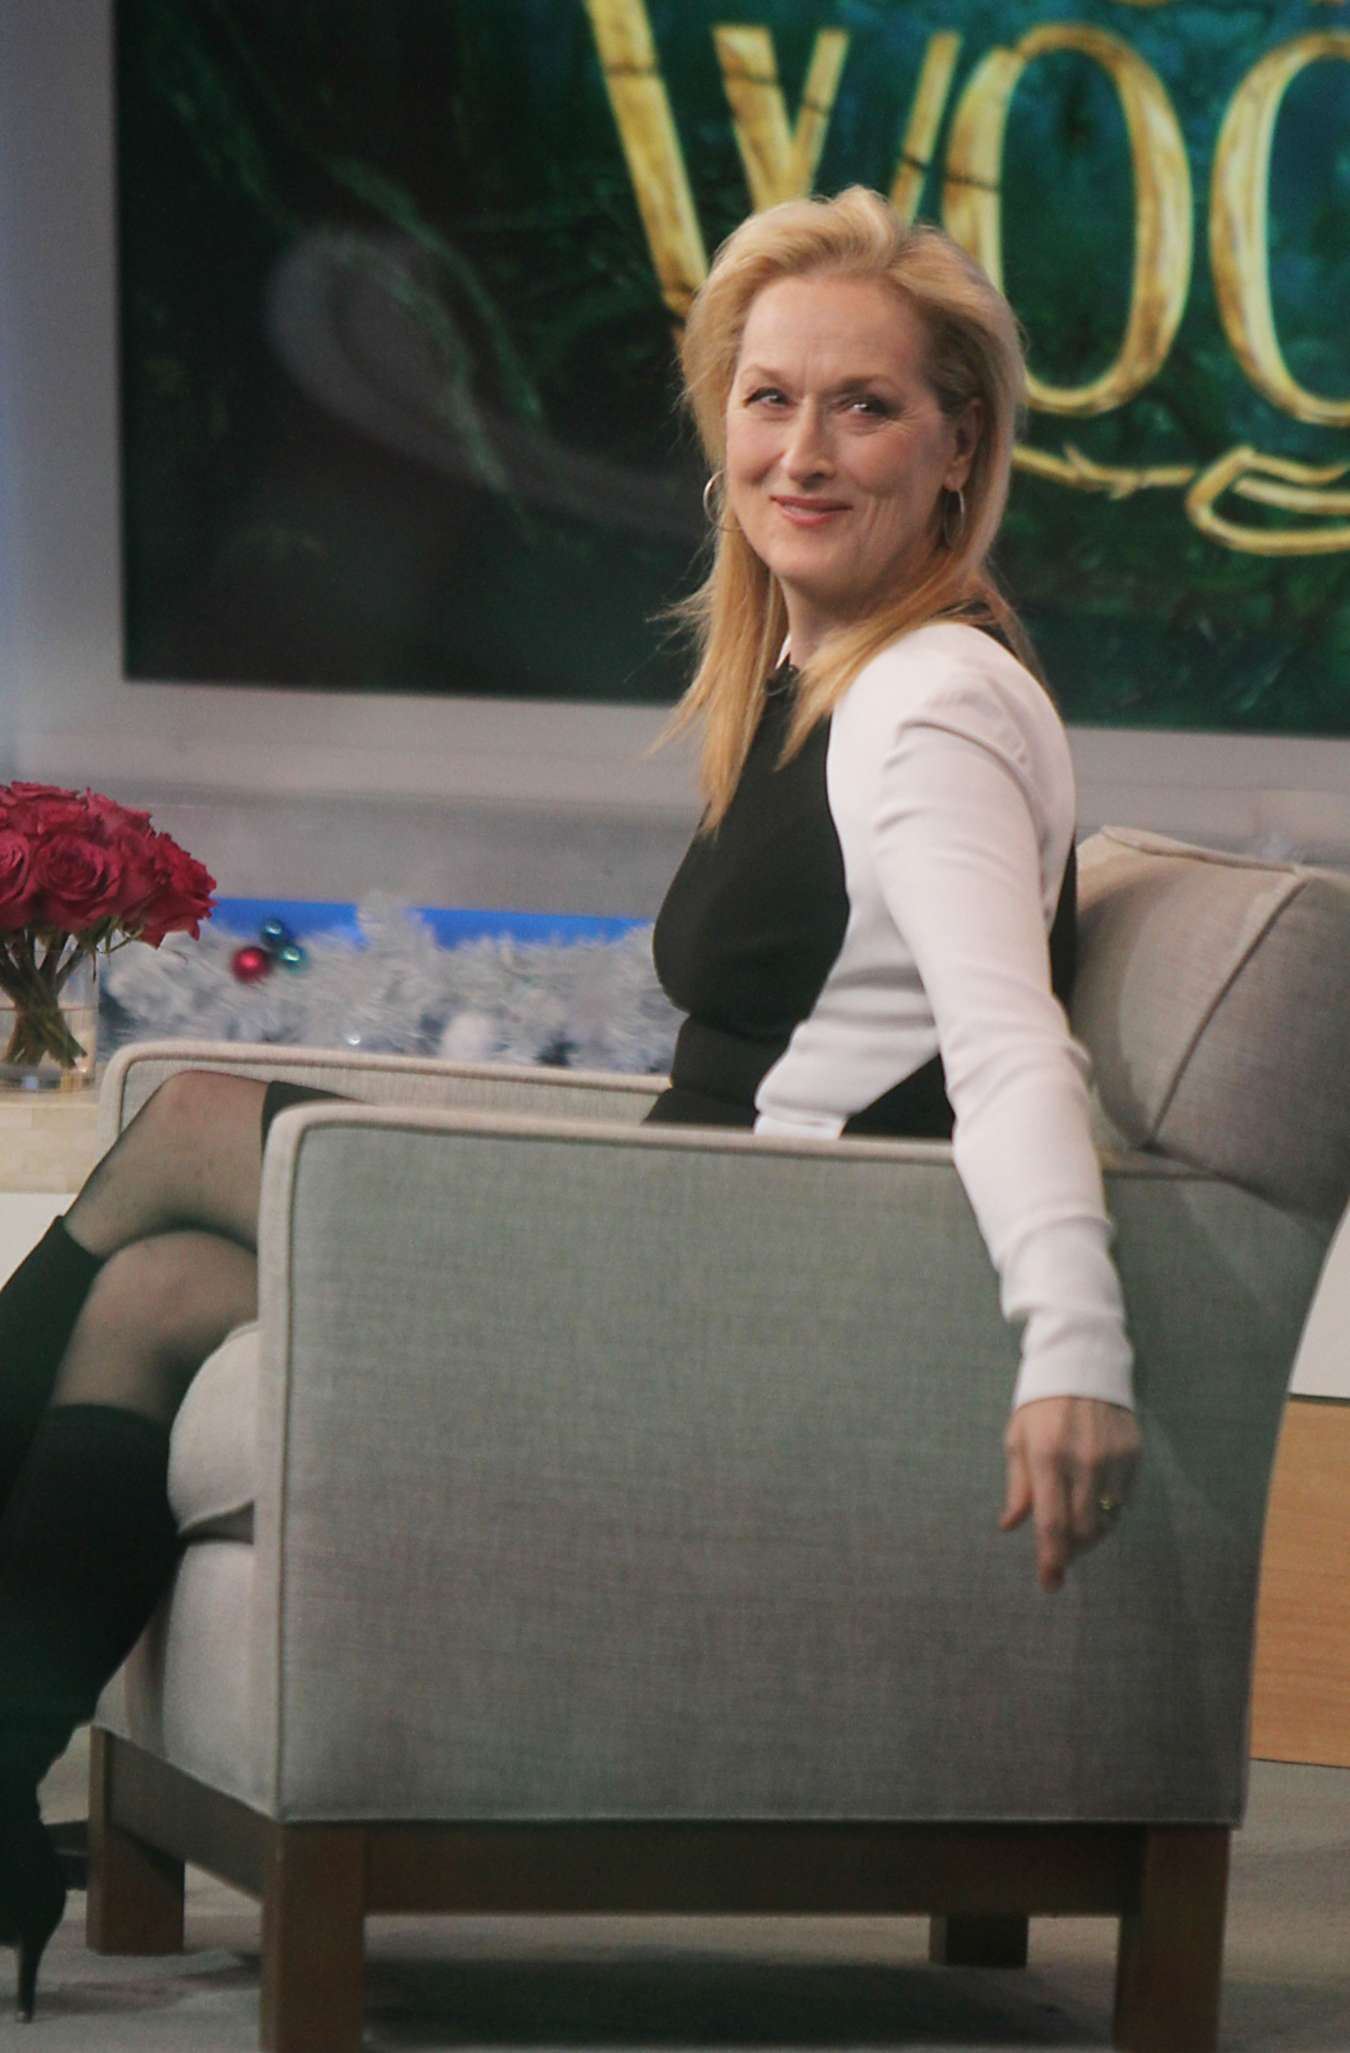 Good Morning America Nyc : Meryl streep at good morning america in new york city